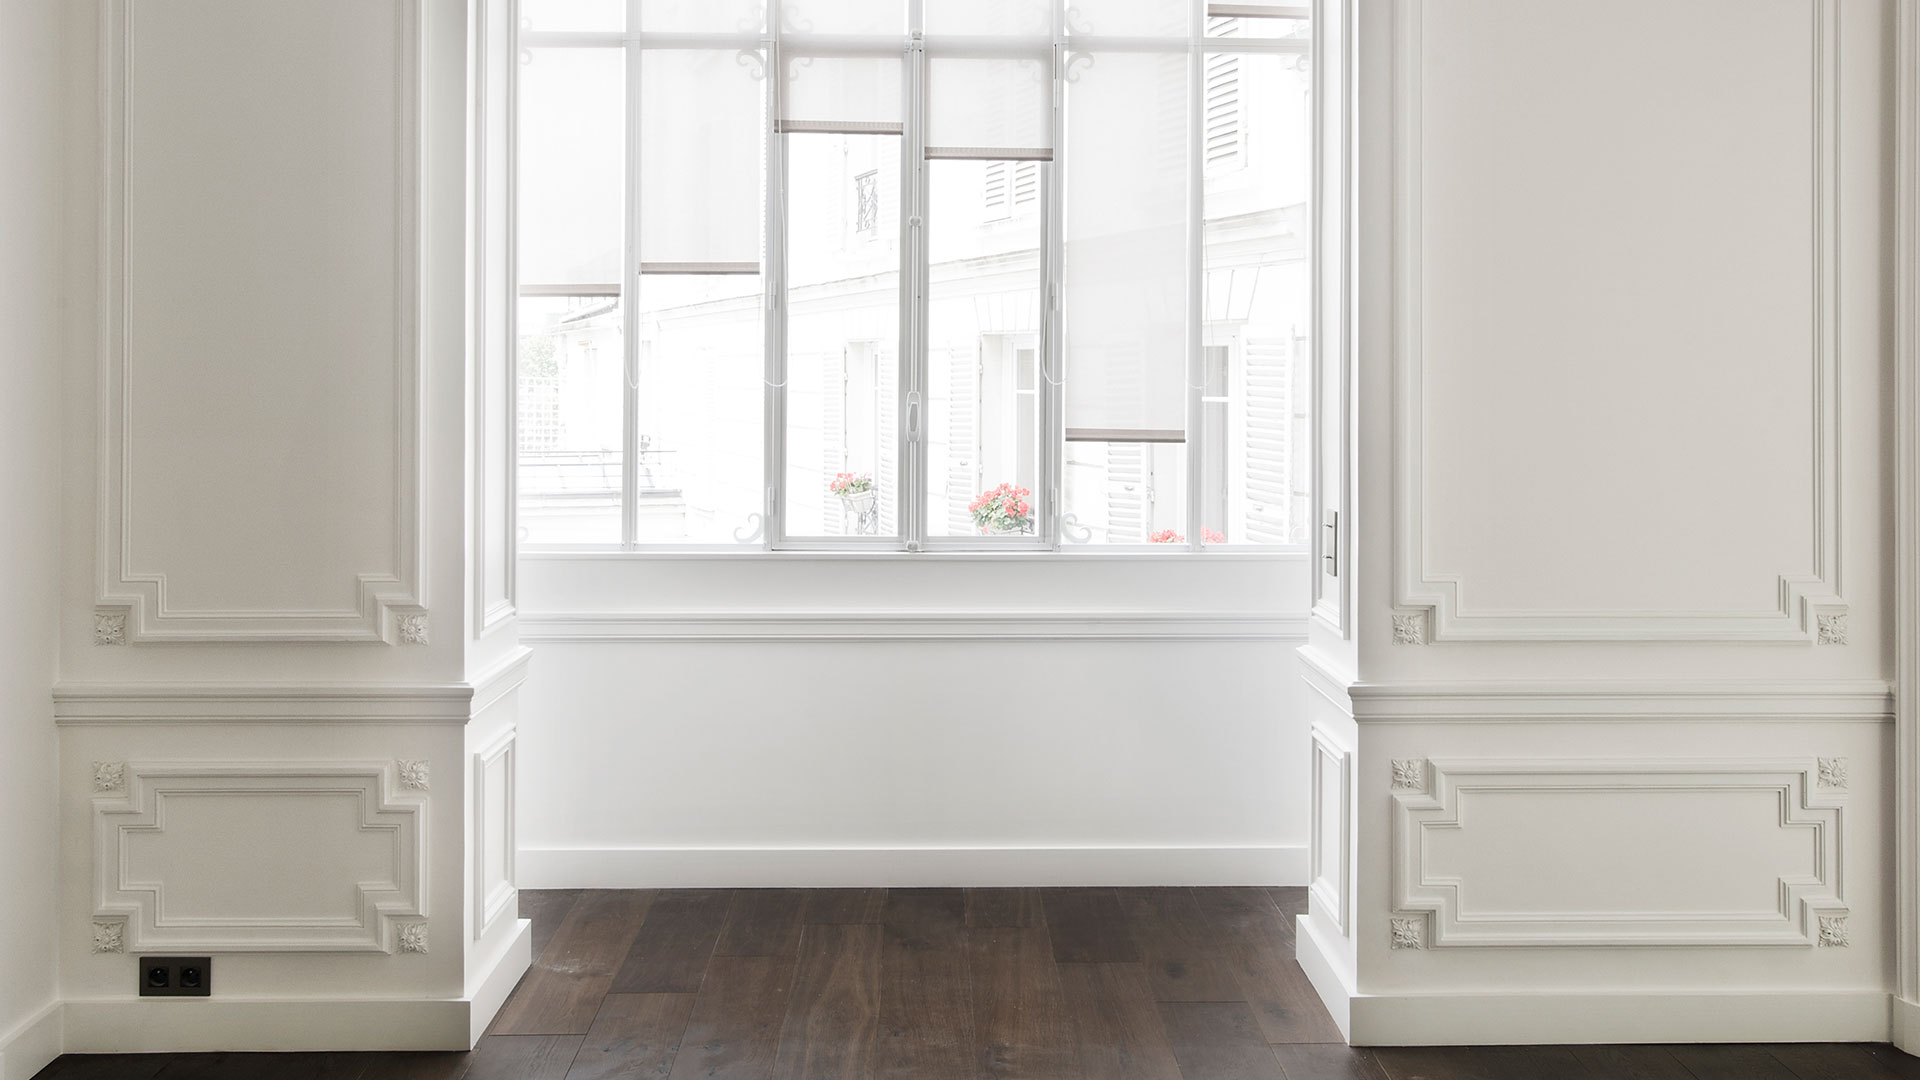 Prices and Services for renovating apartment in Paris by the Interior Designer, Benny Benlolo